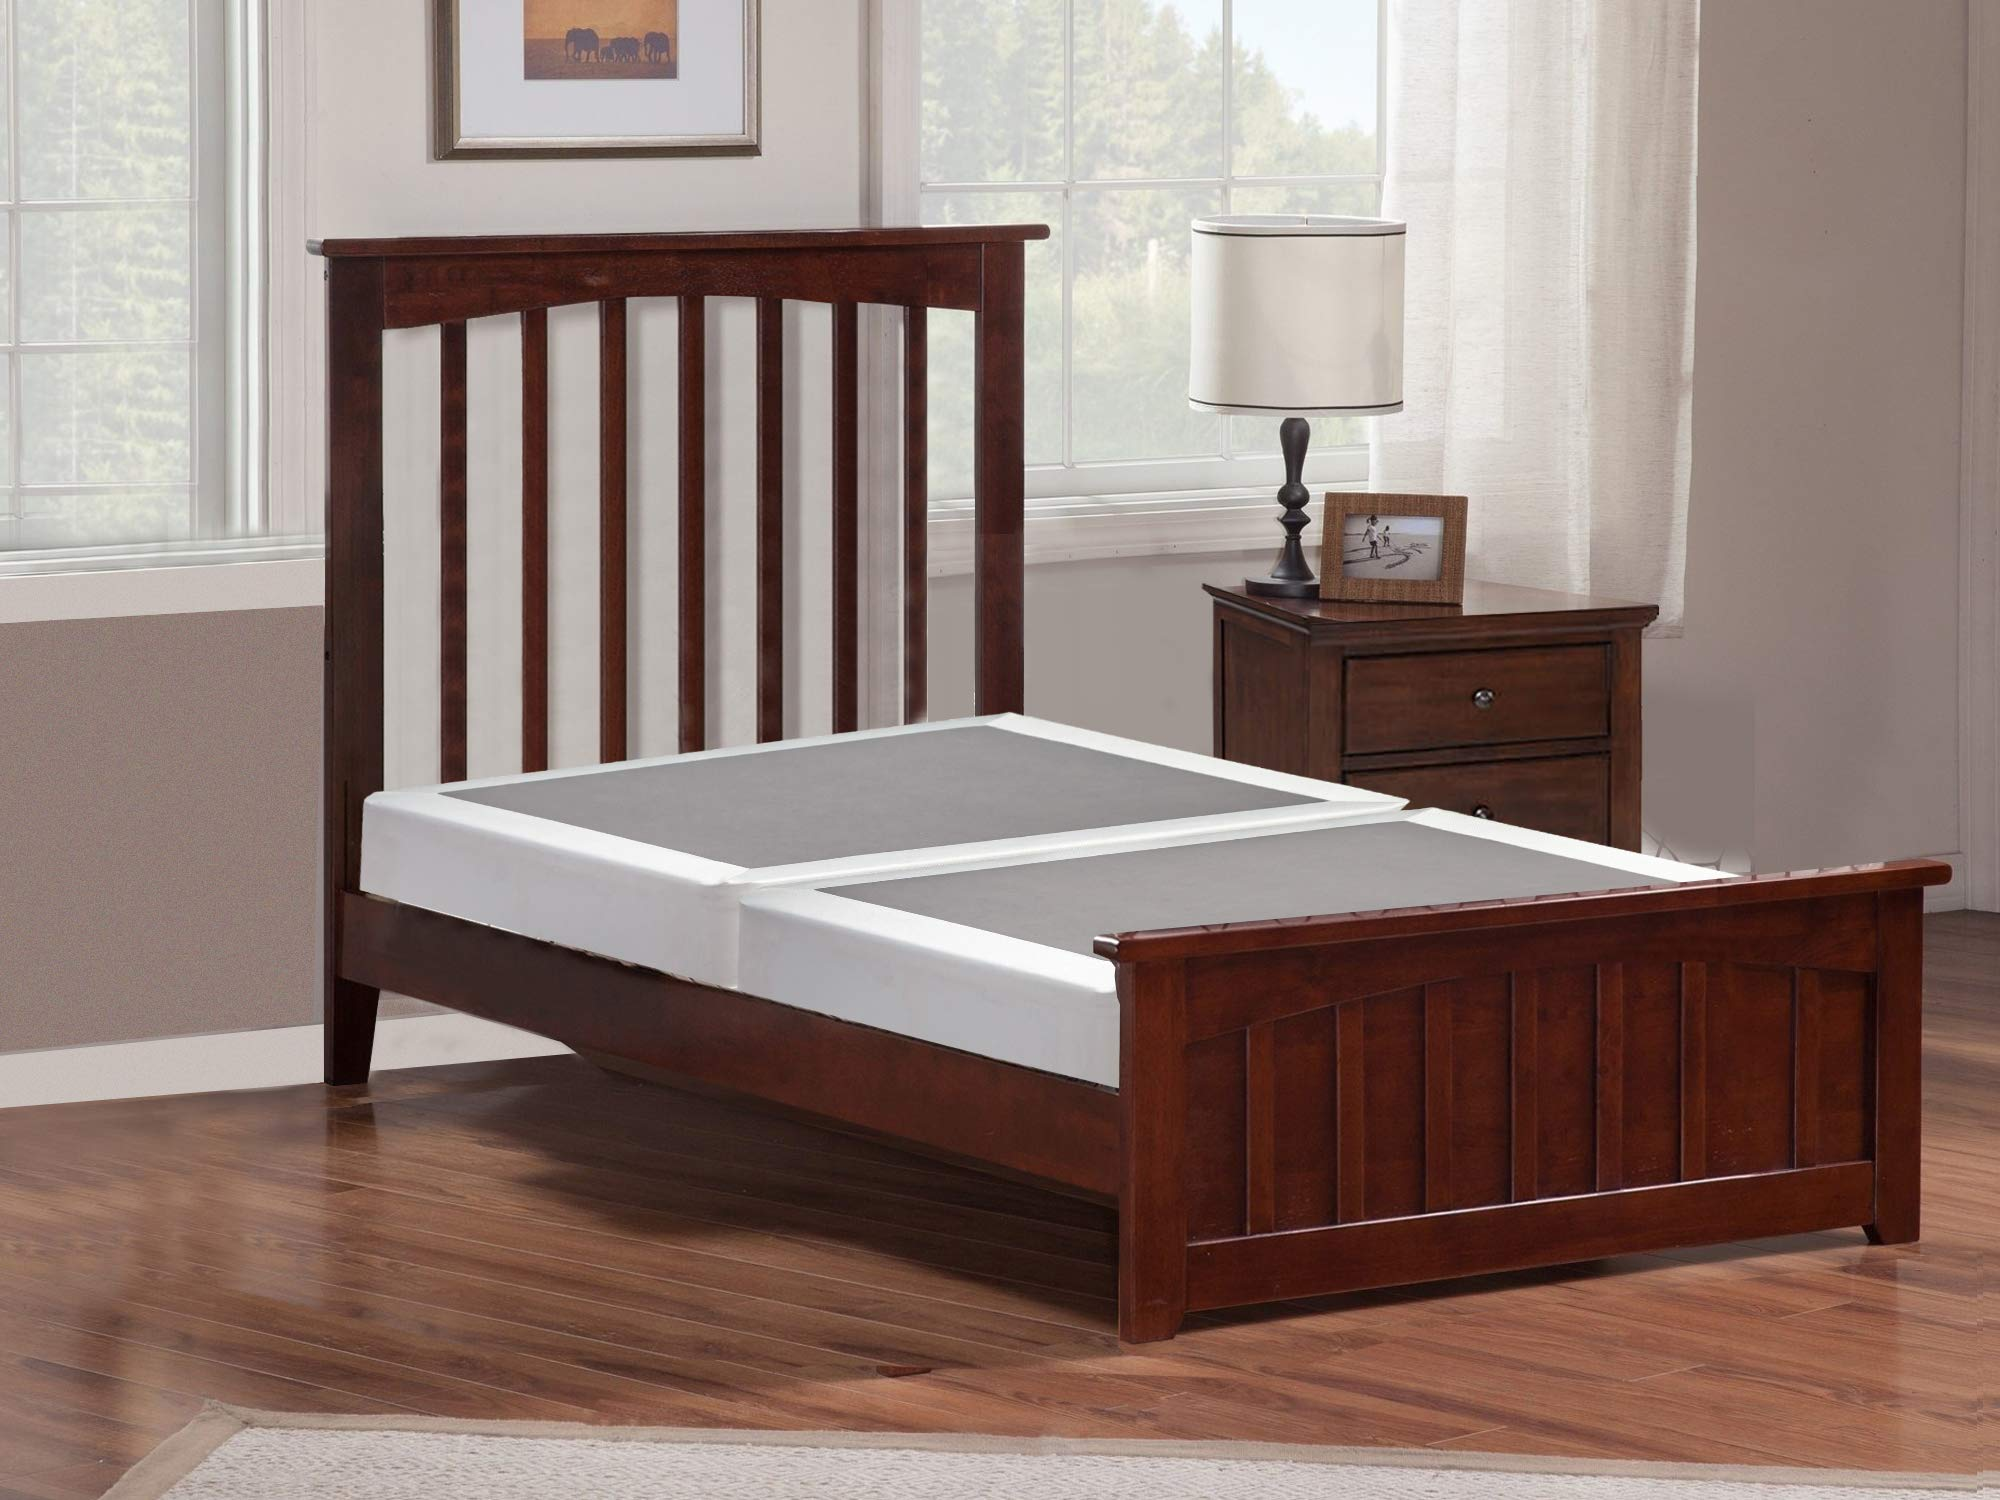 Mayton 8-Inch Full Size Split Box Spring Mattress Foundation/Strong Structure, 53x74